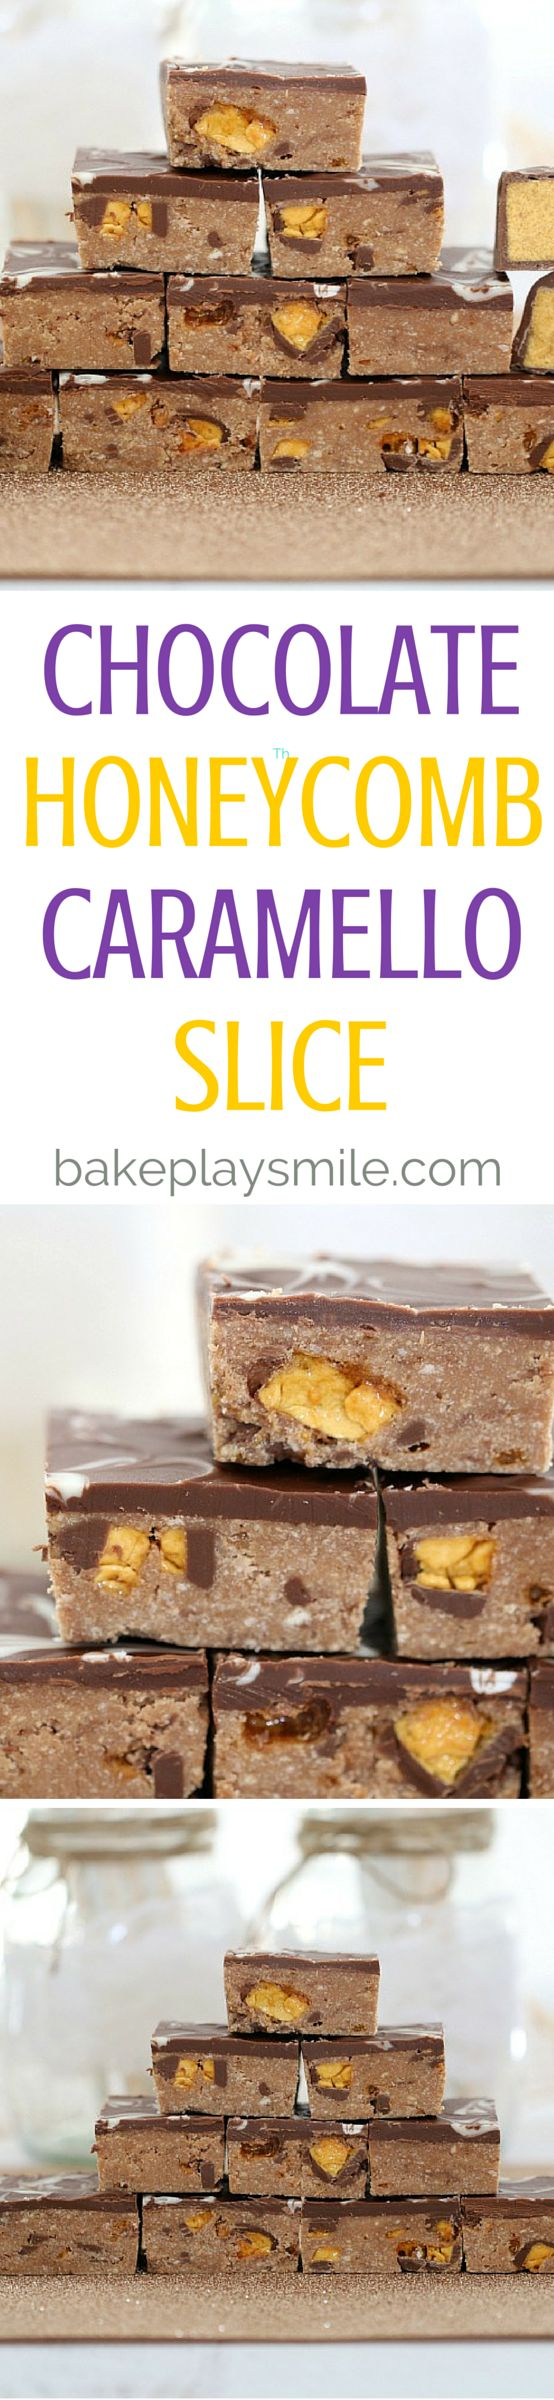 This Chocolate Honeycomb Caramello Slice is completely no-bake and totally…